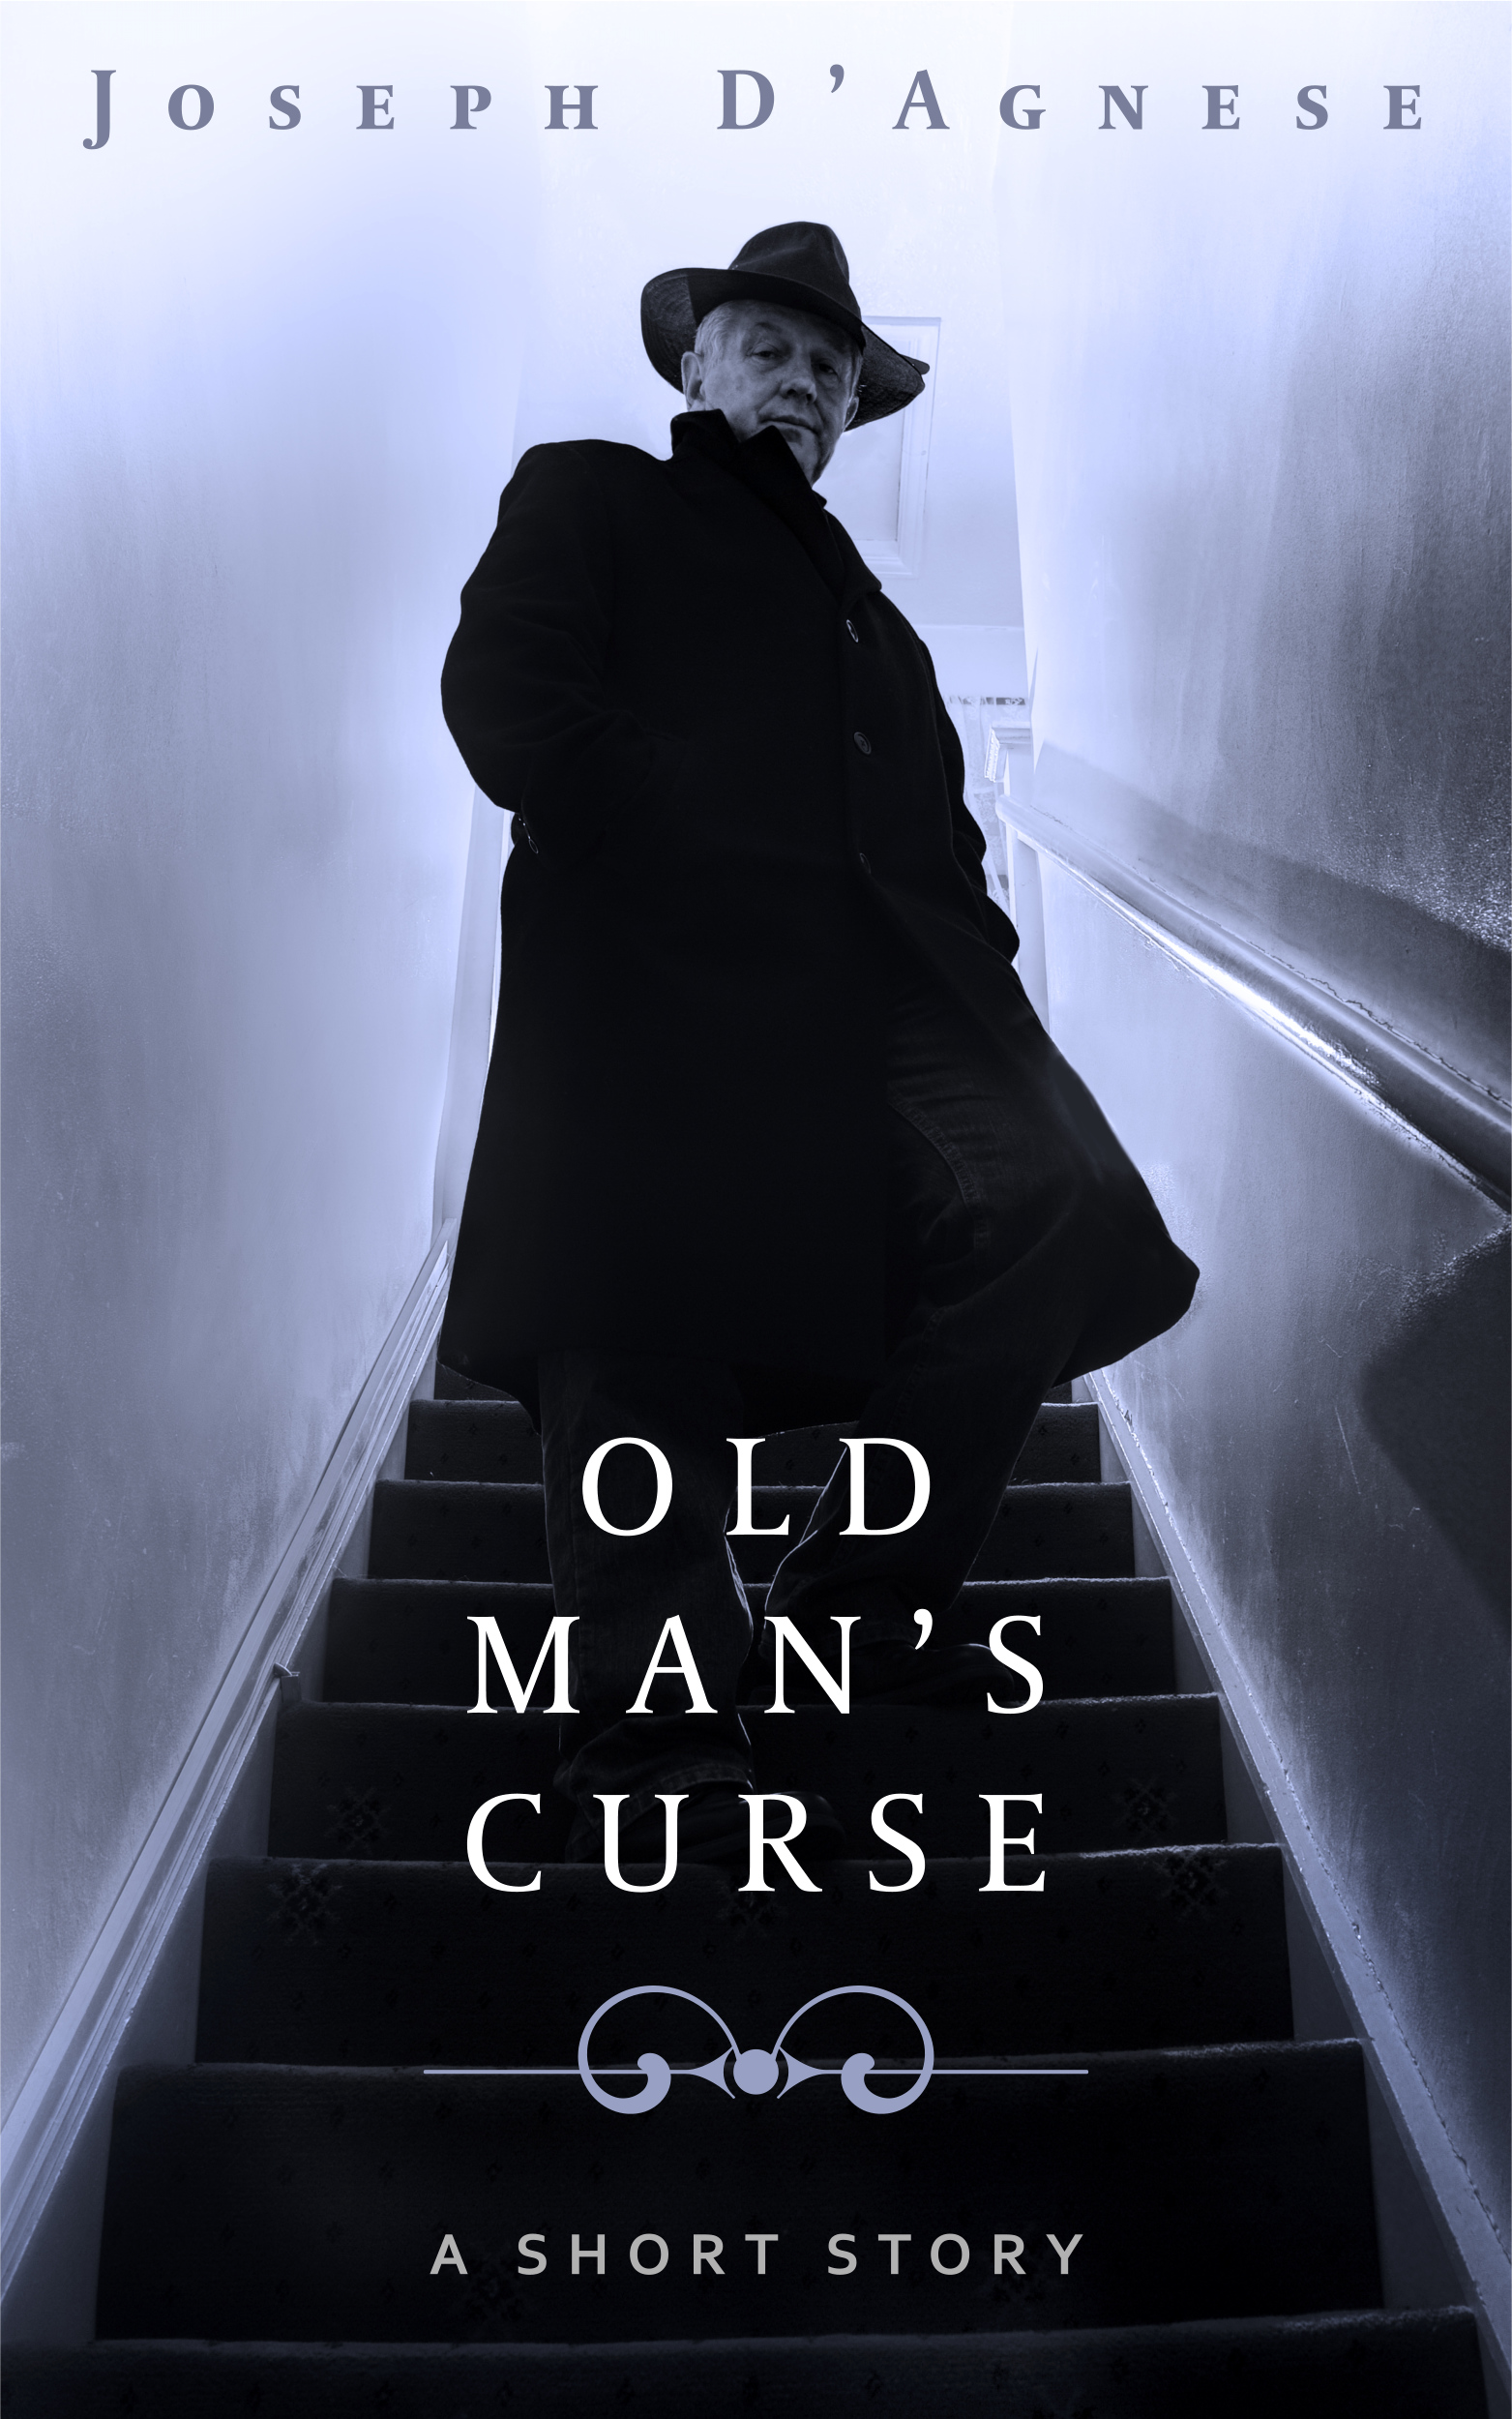 OLD MAN'S CURSE by Joseph D'Agnese